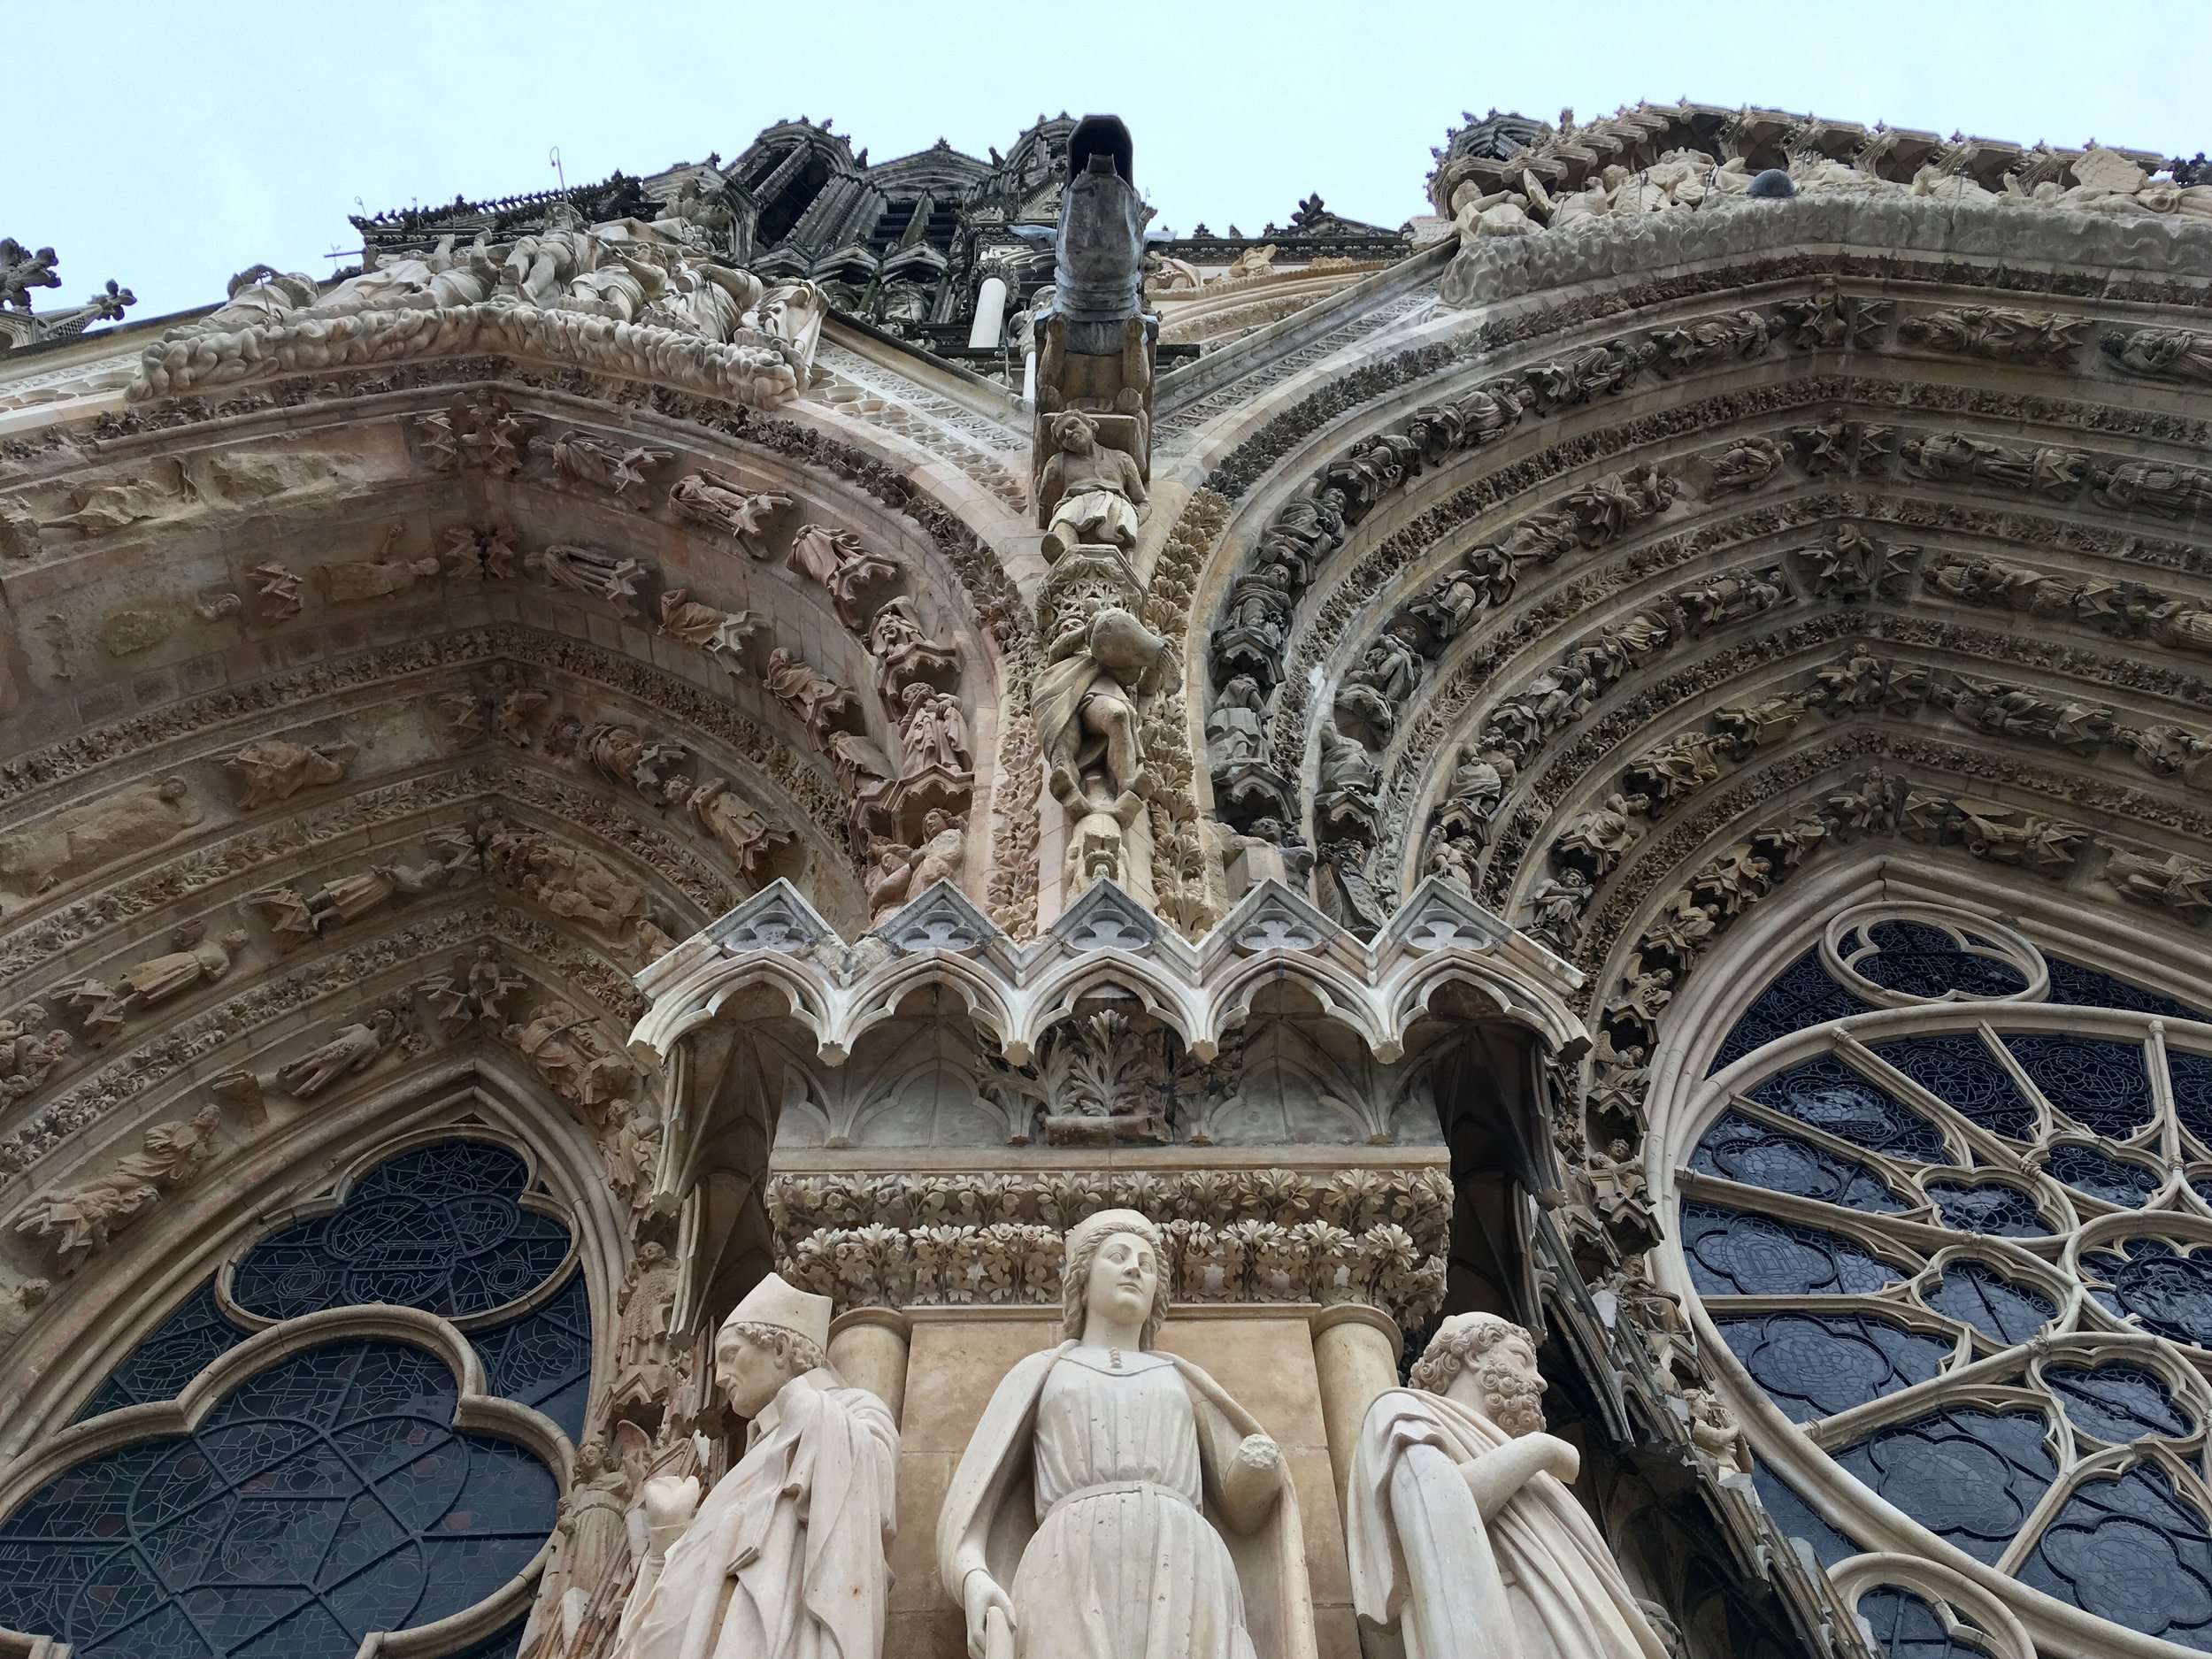 The gorgeous, gothic-style Reims cathedral is best known for being the church where French kings were crowned, and enduring multiple fires. The city of Reims celebrated the church's 800th (!) anniversary in 2011.